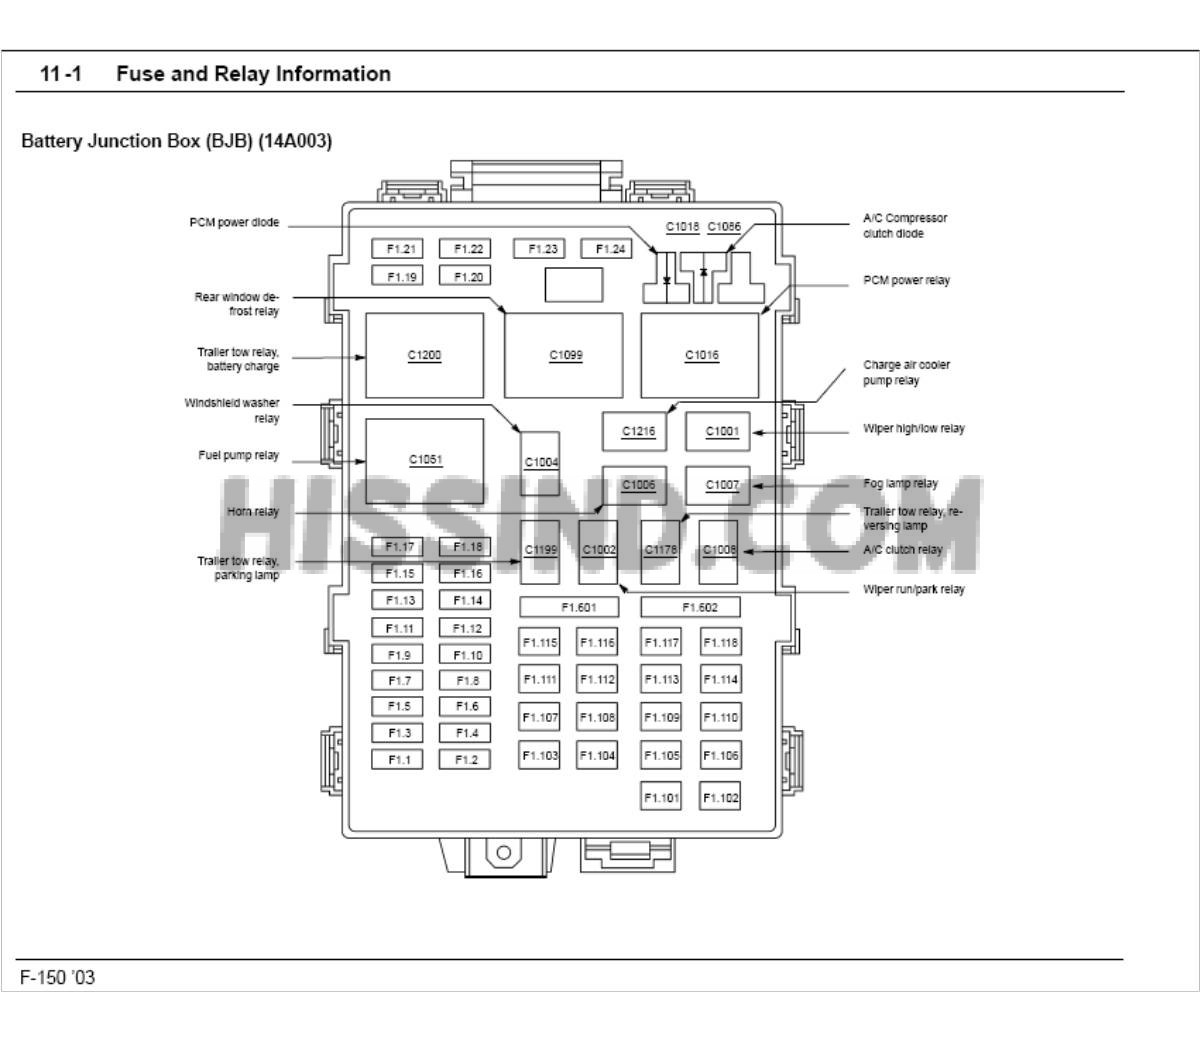 2000 ford f150 fuse box diagram engine bay rh diagrams hissind com 2015 F-150 Mirror Wiring Diagram 2015 F250 Wiring Diagram